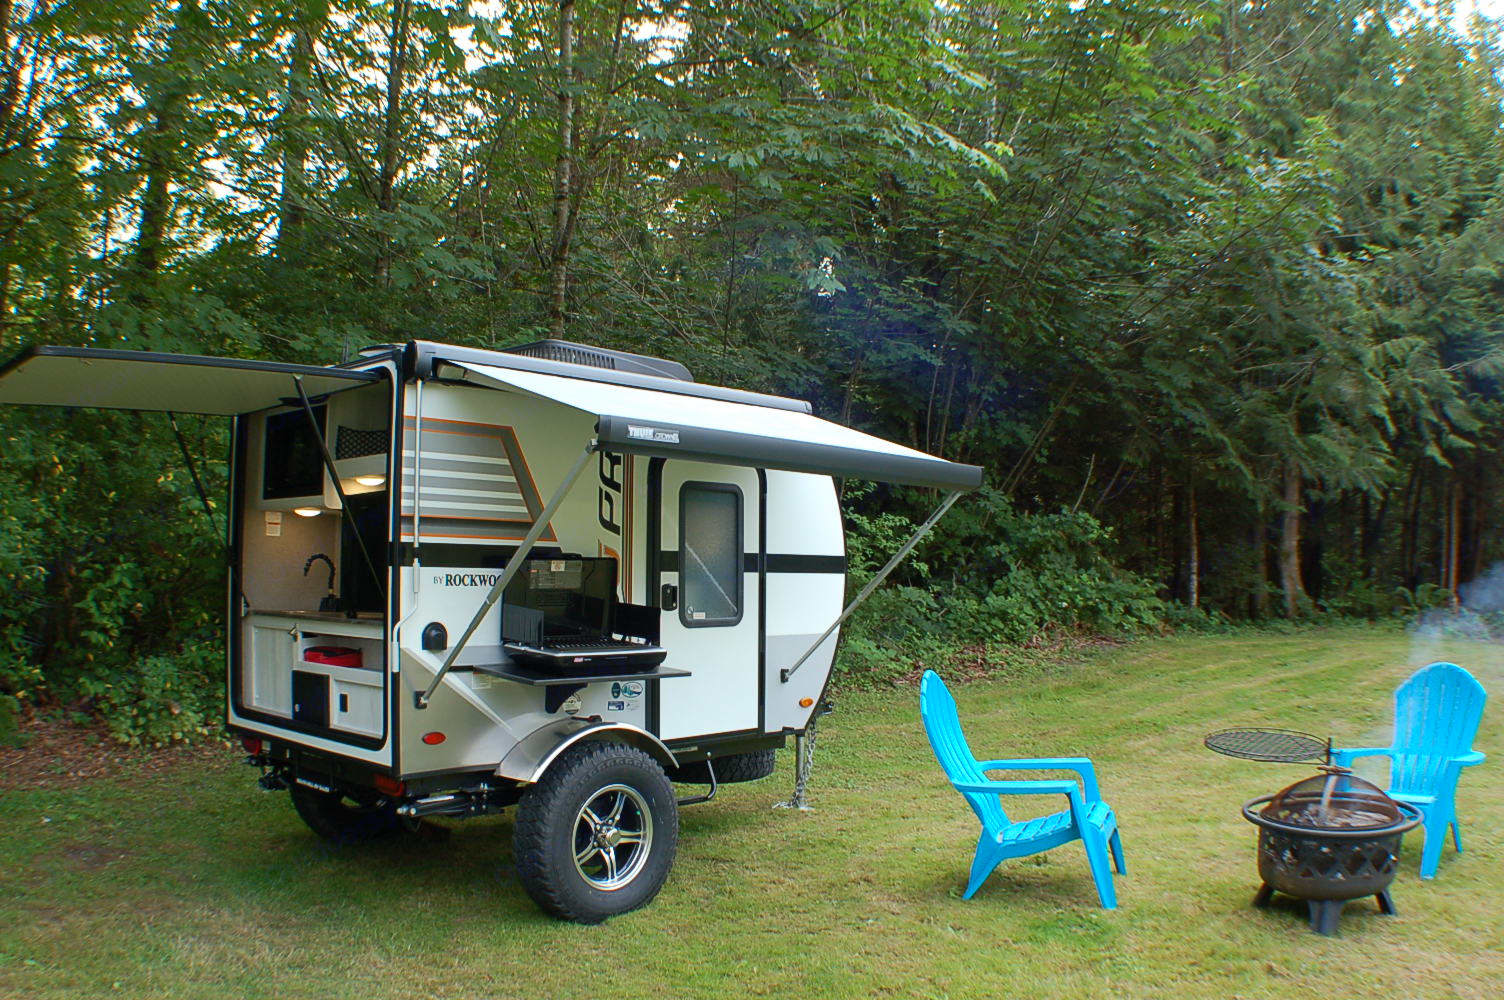 Covered exit and kitchen to stay dry in those dewy mornings! Coleman stove for cooking.. Forest River Rockwood 2019